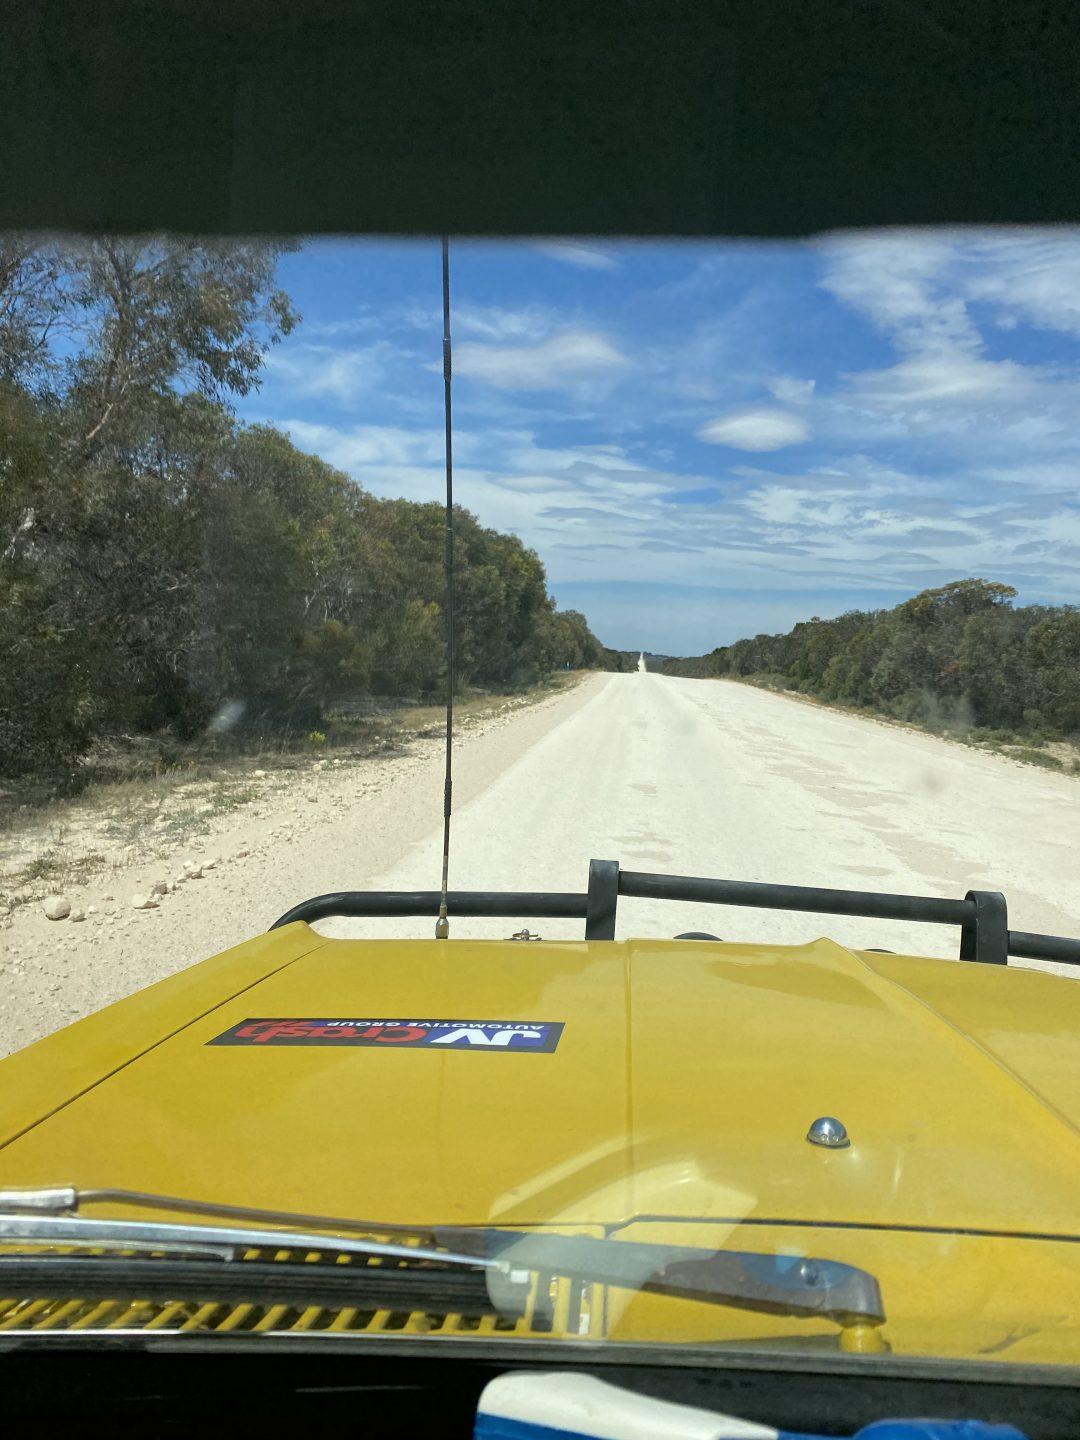 A photo taken from inside a car looking out the windscreen to a dirt road. The car bonnet is yellow and the dirt road is lined with Australian bush land.